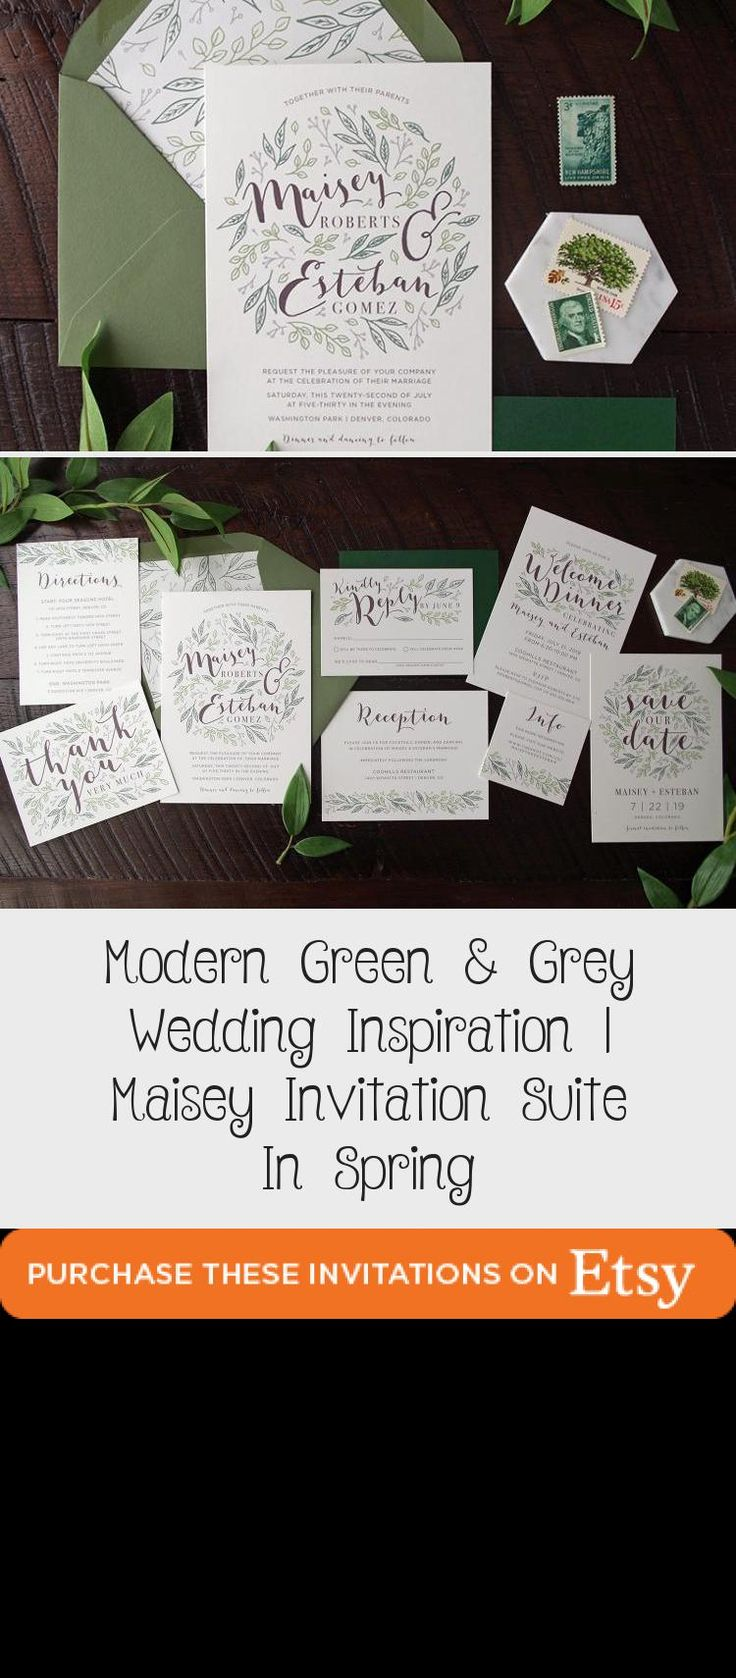 Botanical illustration Green & Grey Wedding inspiration perfect for a modern garden wedding or an urban wedding dripping with greenery. Palette of greens - emerald and sage. Earthy and organic with clean, modern touches. Bridesmaid dresses #OrangeBridesmaidDresses #BlackBridesmaidDresses #BridesmaidDressesWithSleeves #MaroonBridesmaidDresses #BridesmaidDressesIndian